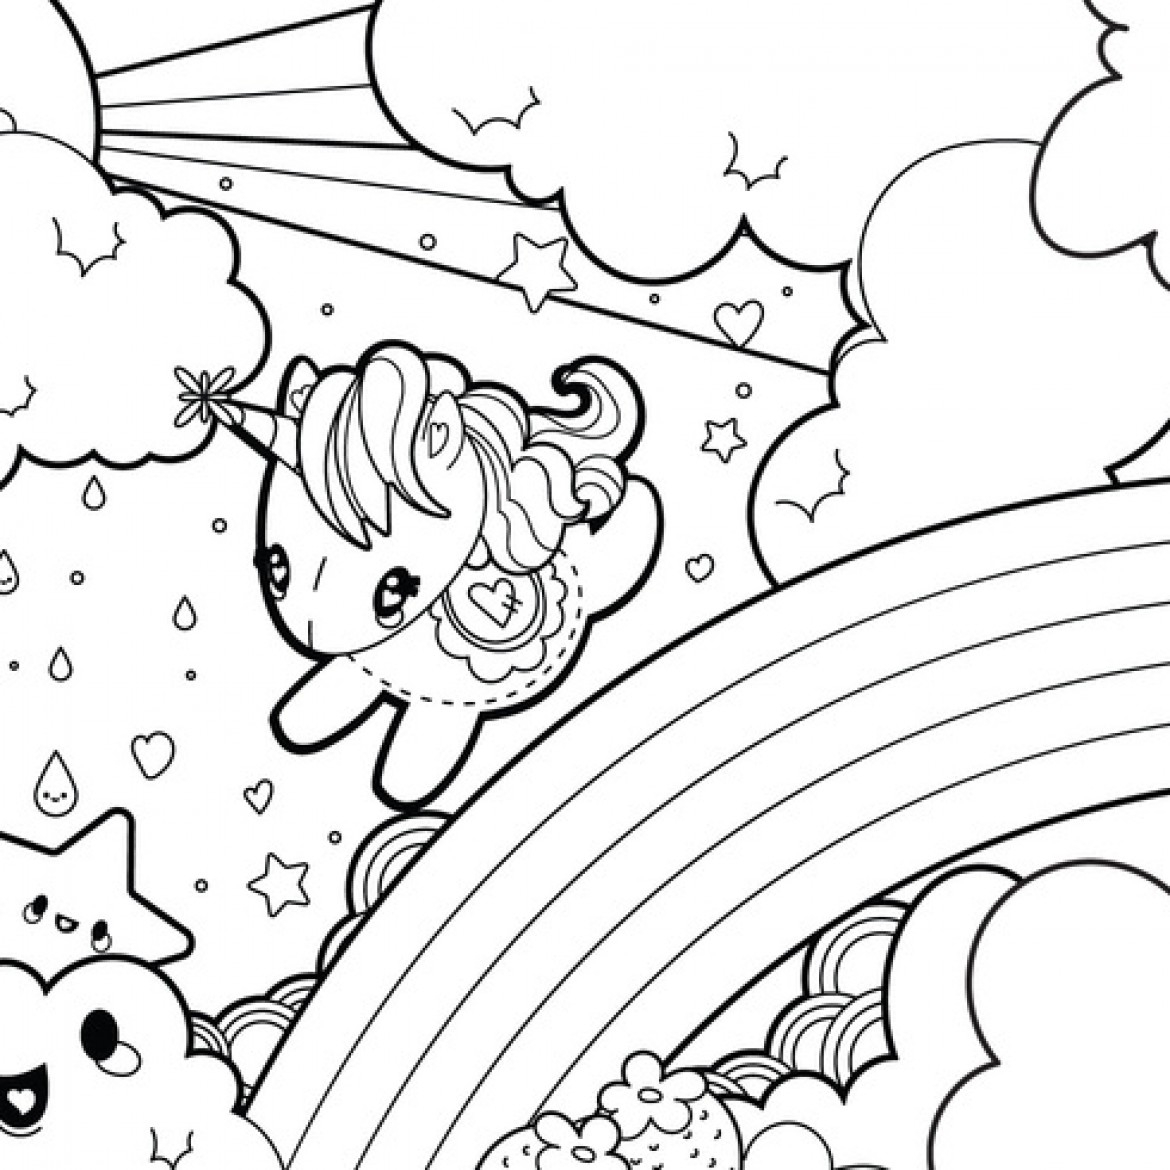 Coloring Pages For Kids To Print Out Coloring Pages Happy Unicorn Rainbow Coloring Page Printable Free